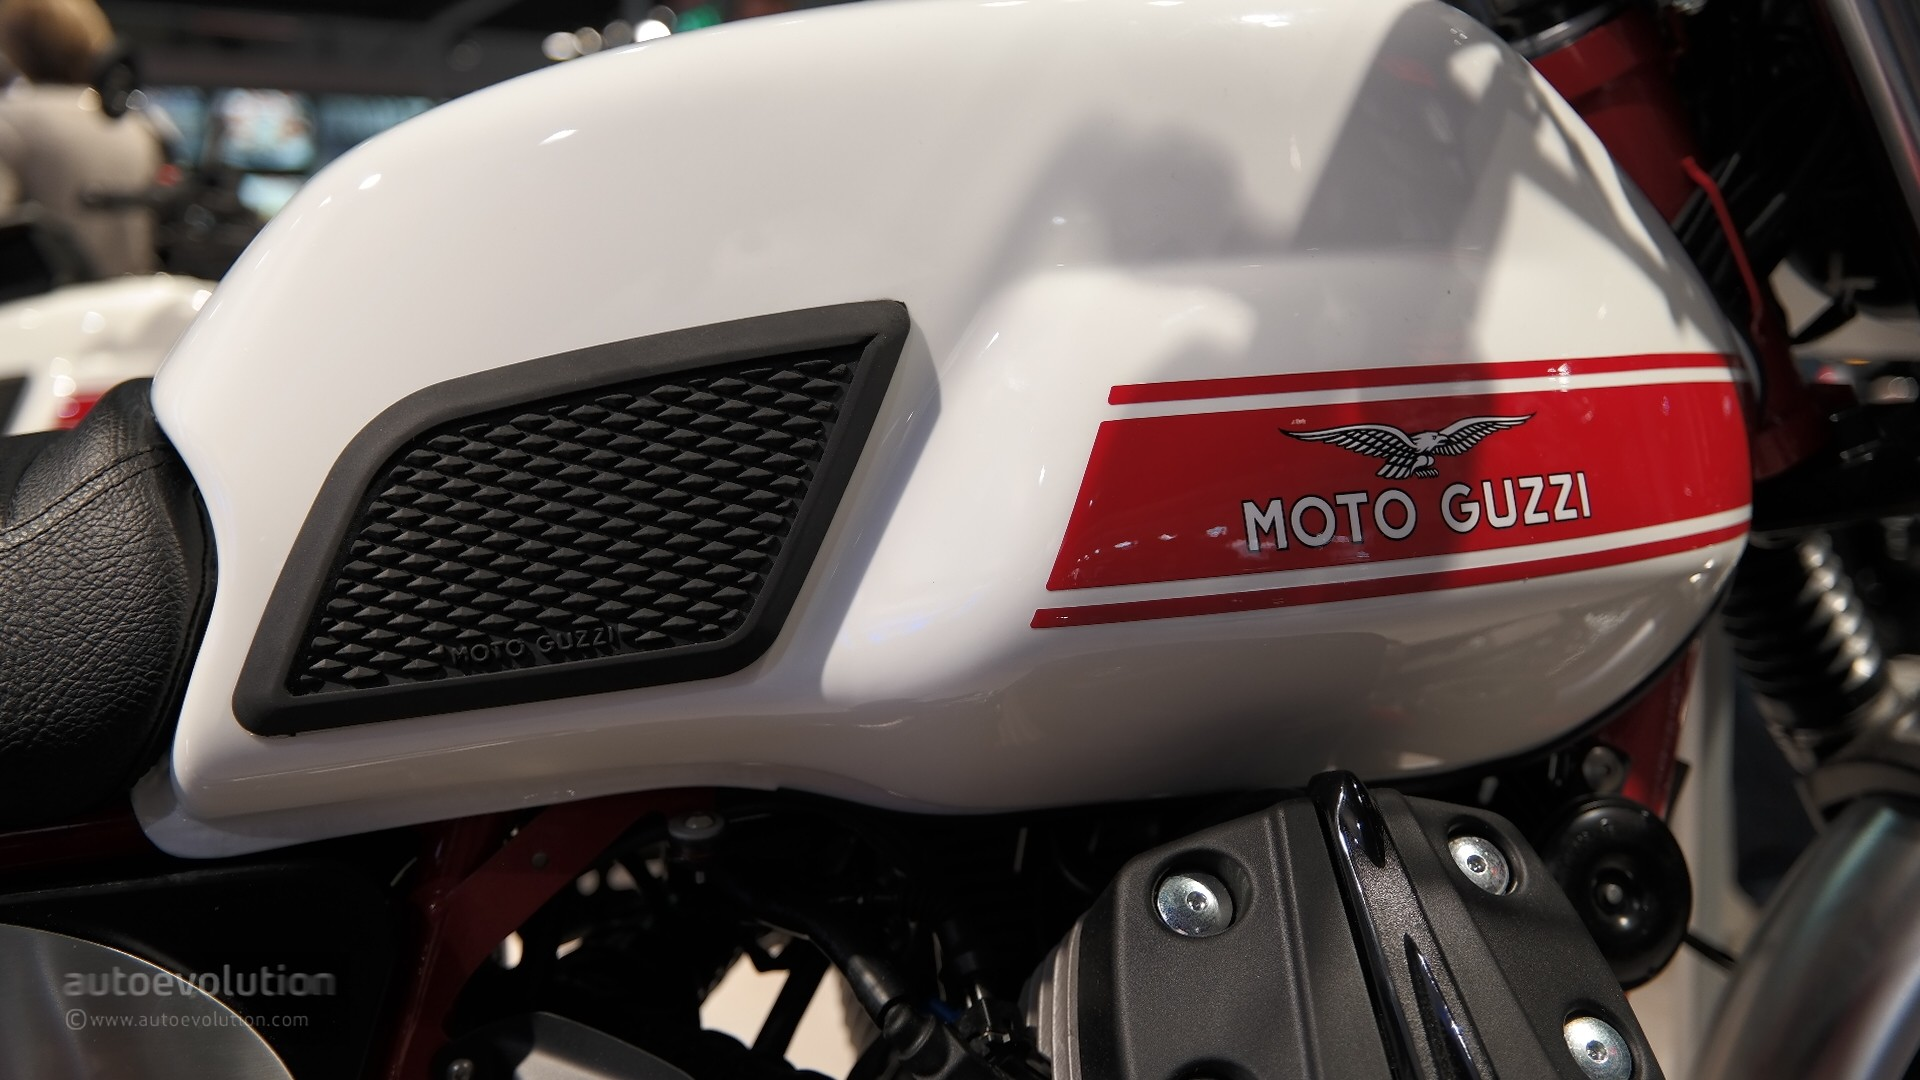 how to add more speed on moto guzzi v7